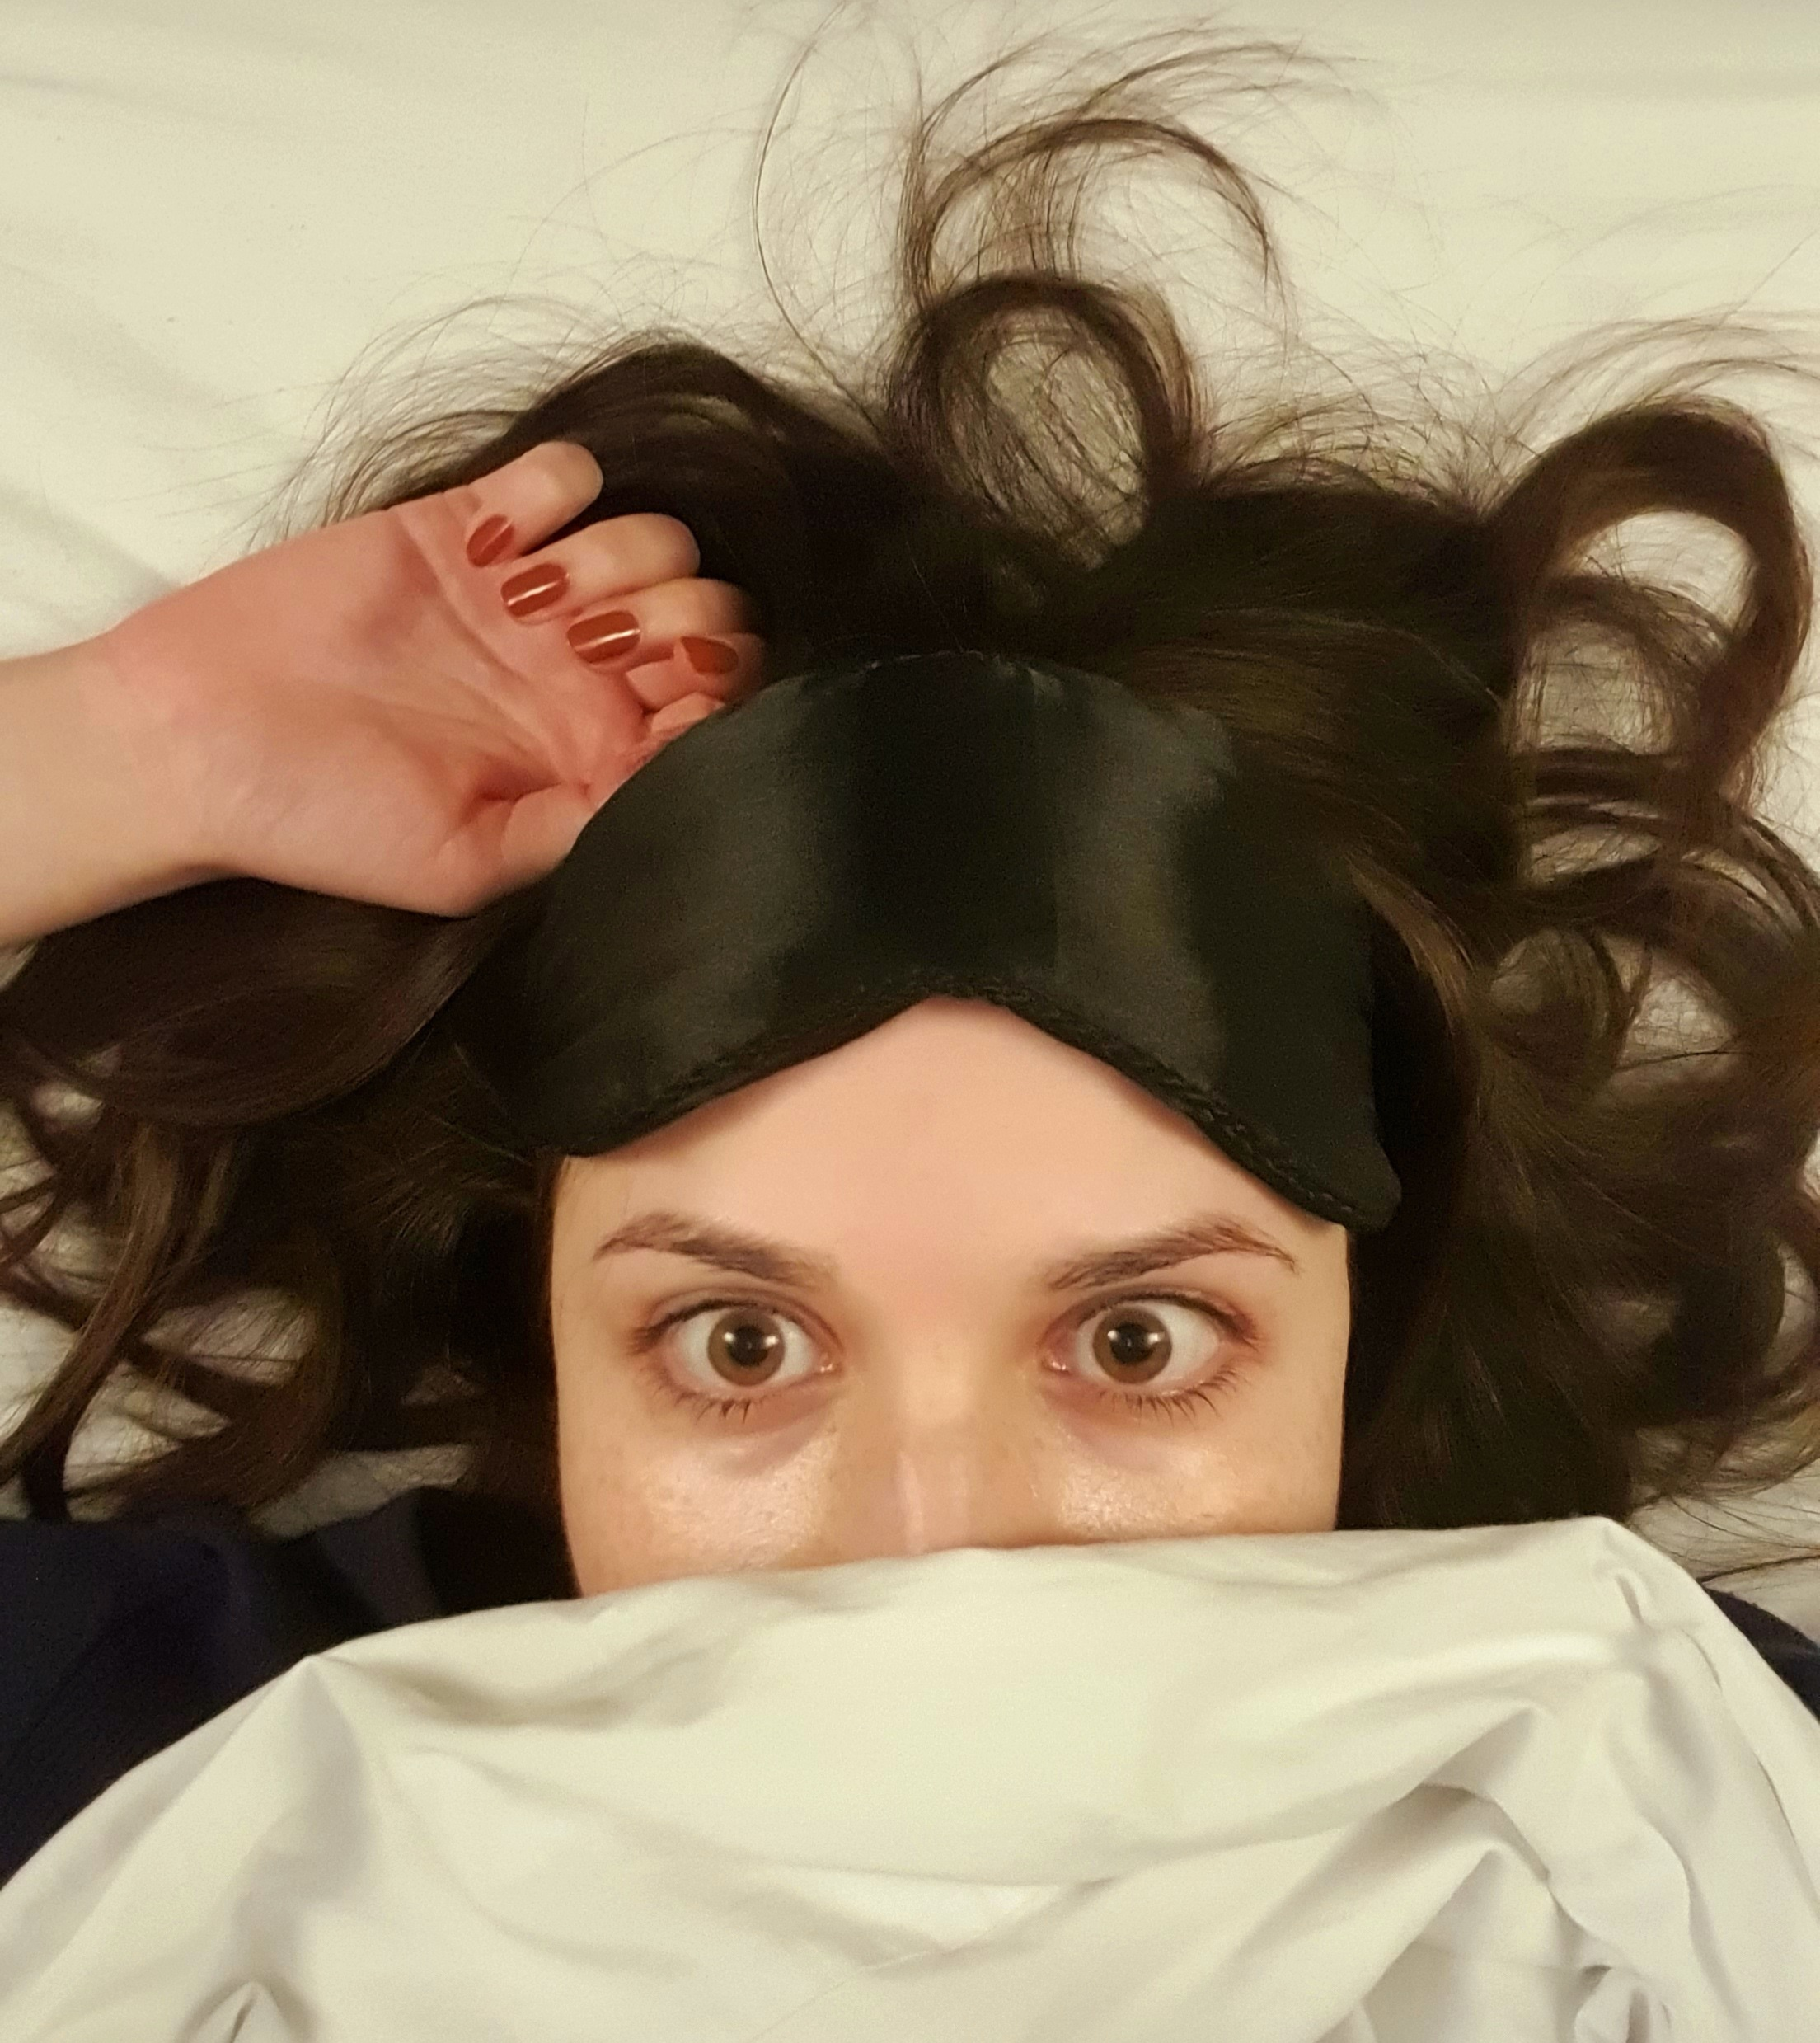 A close-up of the author, Jess, lying in bed, looking exhausted. Her hair is tousled and she is wearing an eye-mask just above her wide eyed stare.